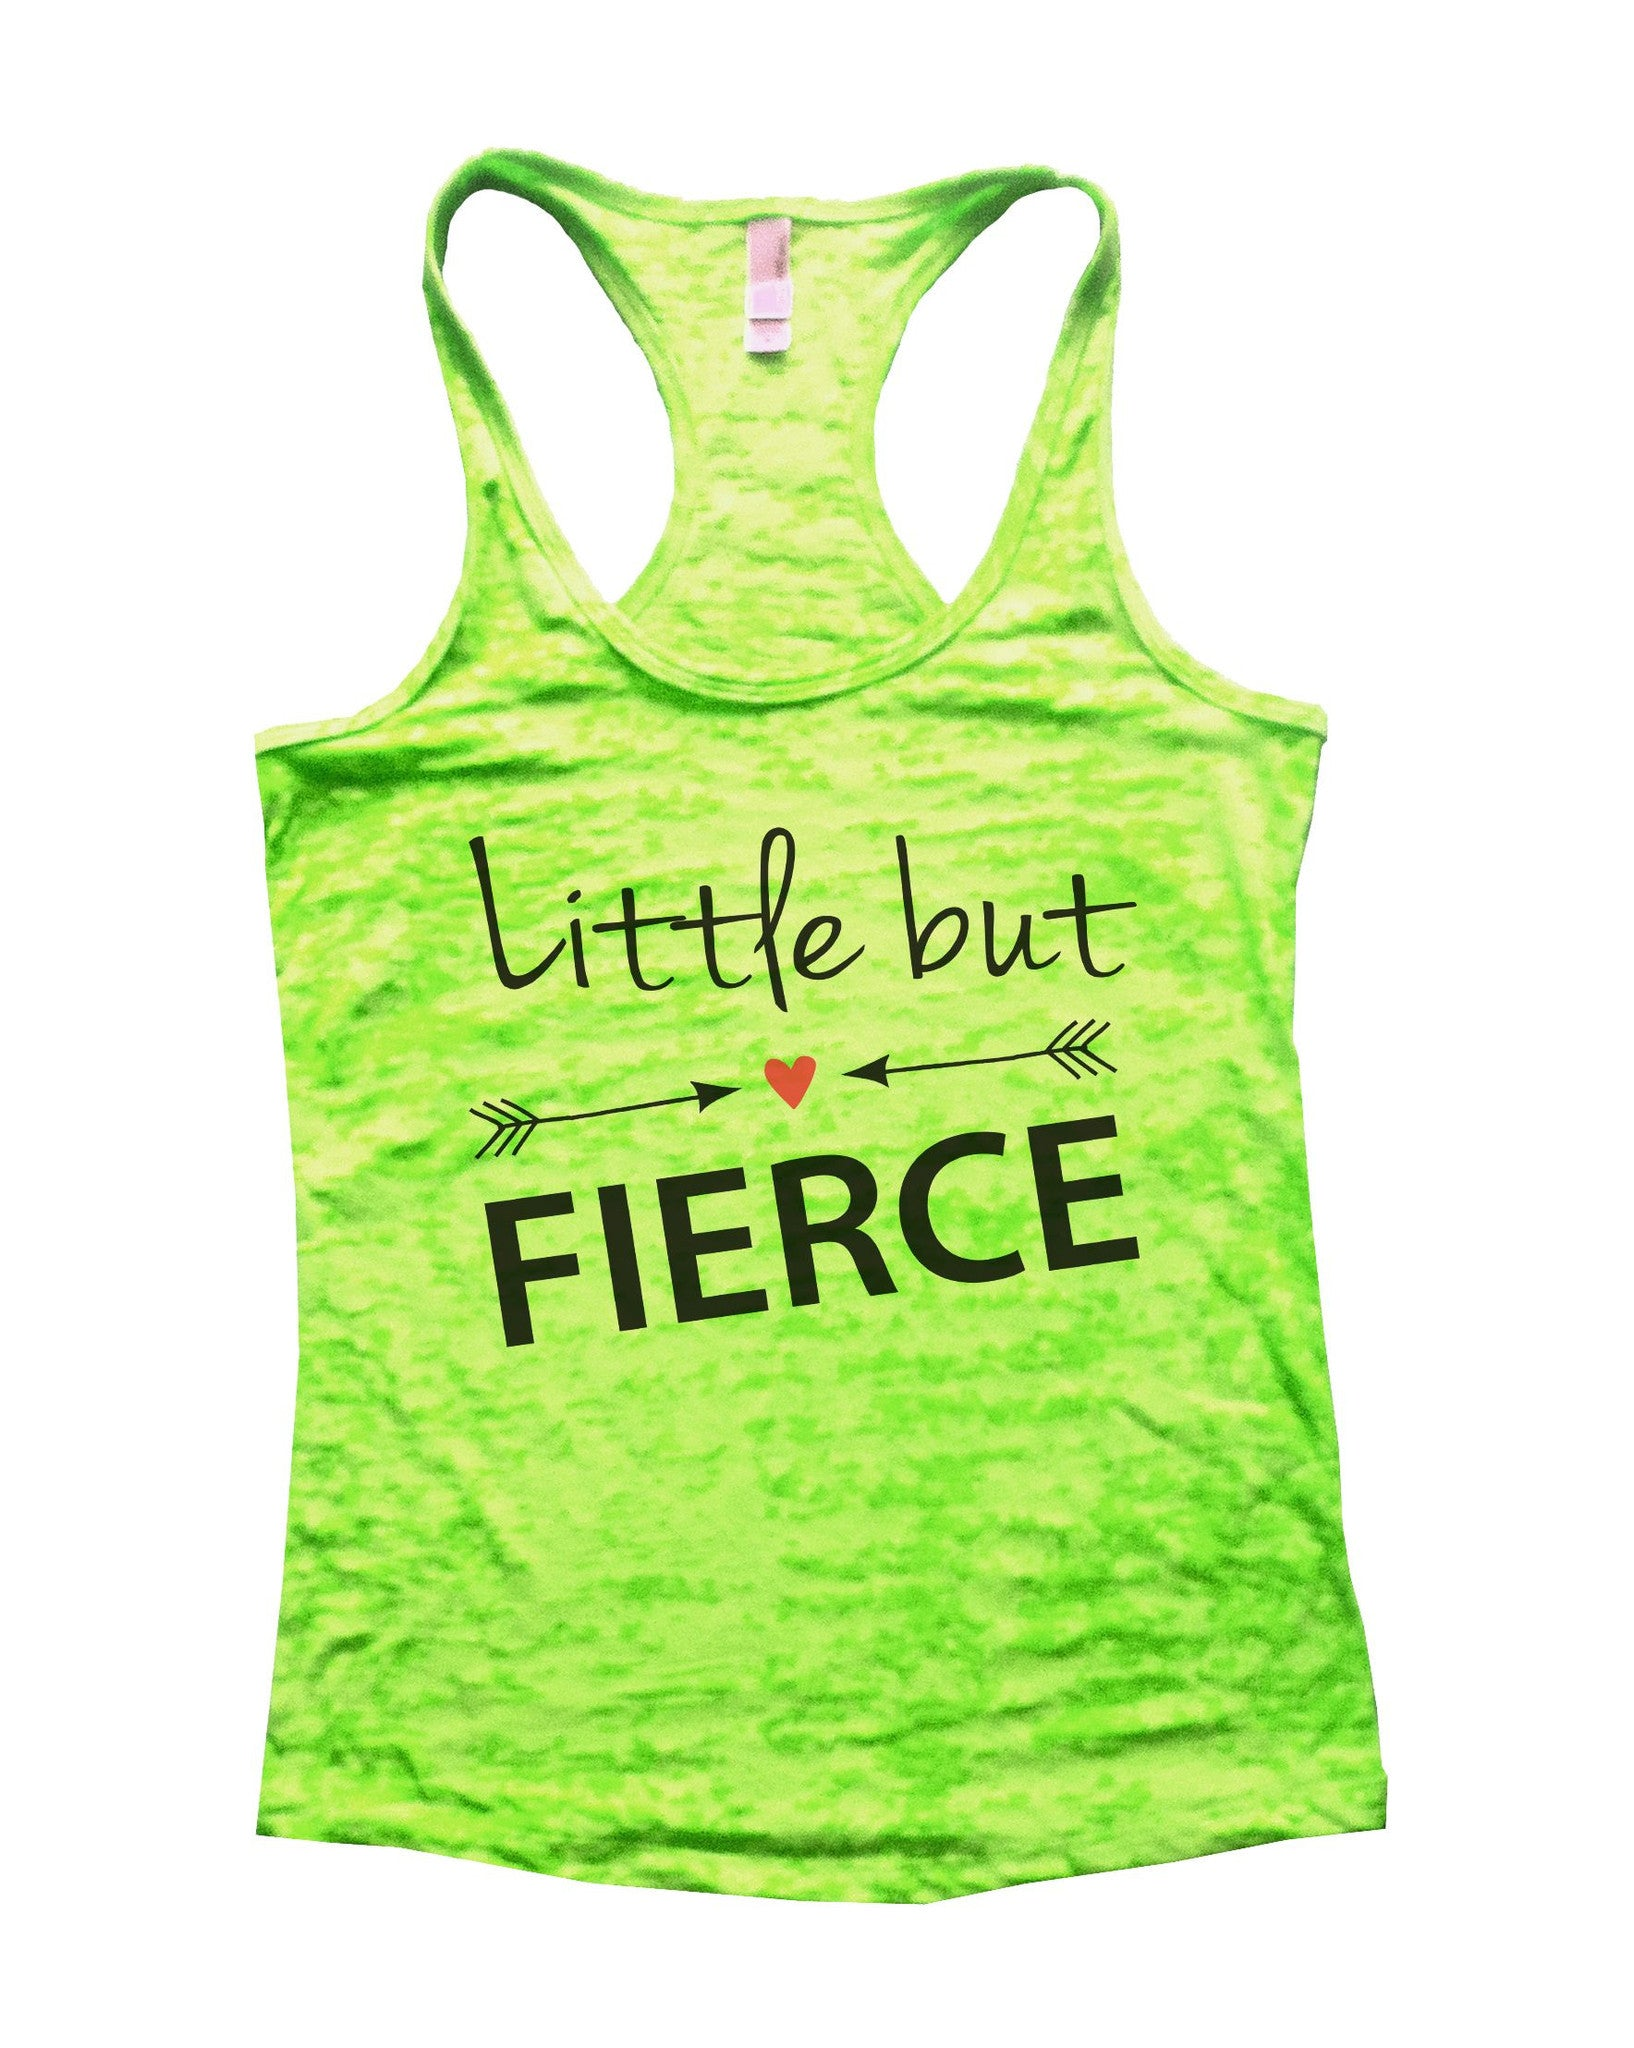 Little But Fierce Burnout Tank Top By BurnoutTankTops.com - 787 - Funny Shirts Tank Tops Burnouts and Triblends  - 2